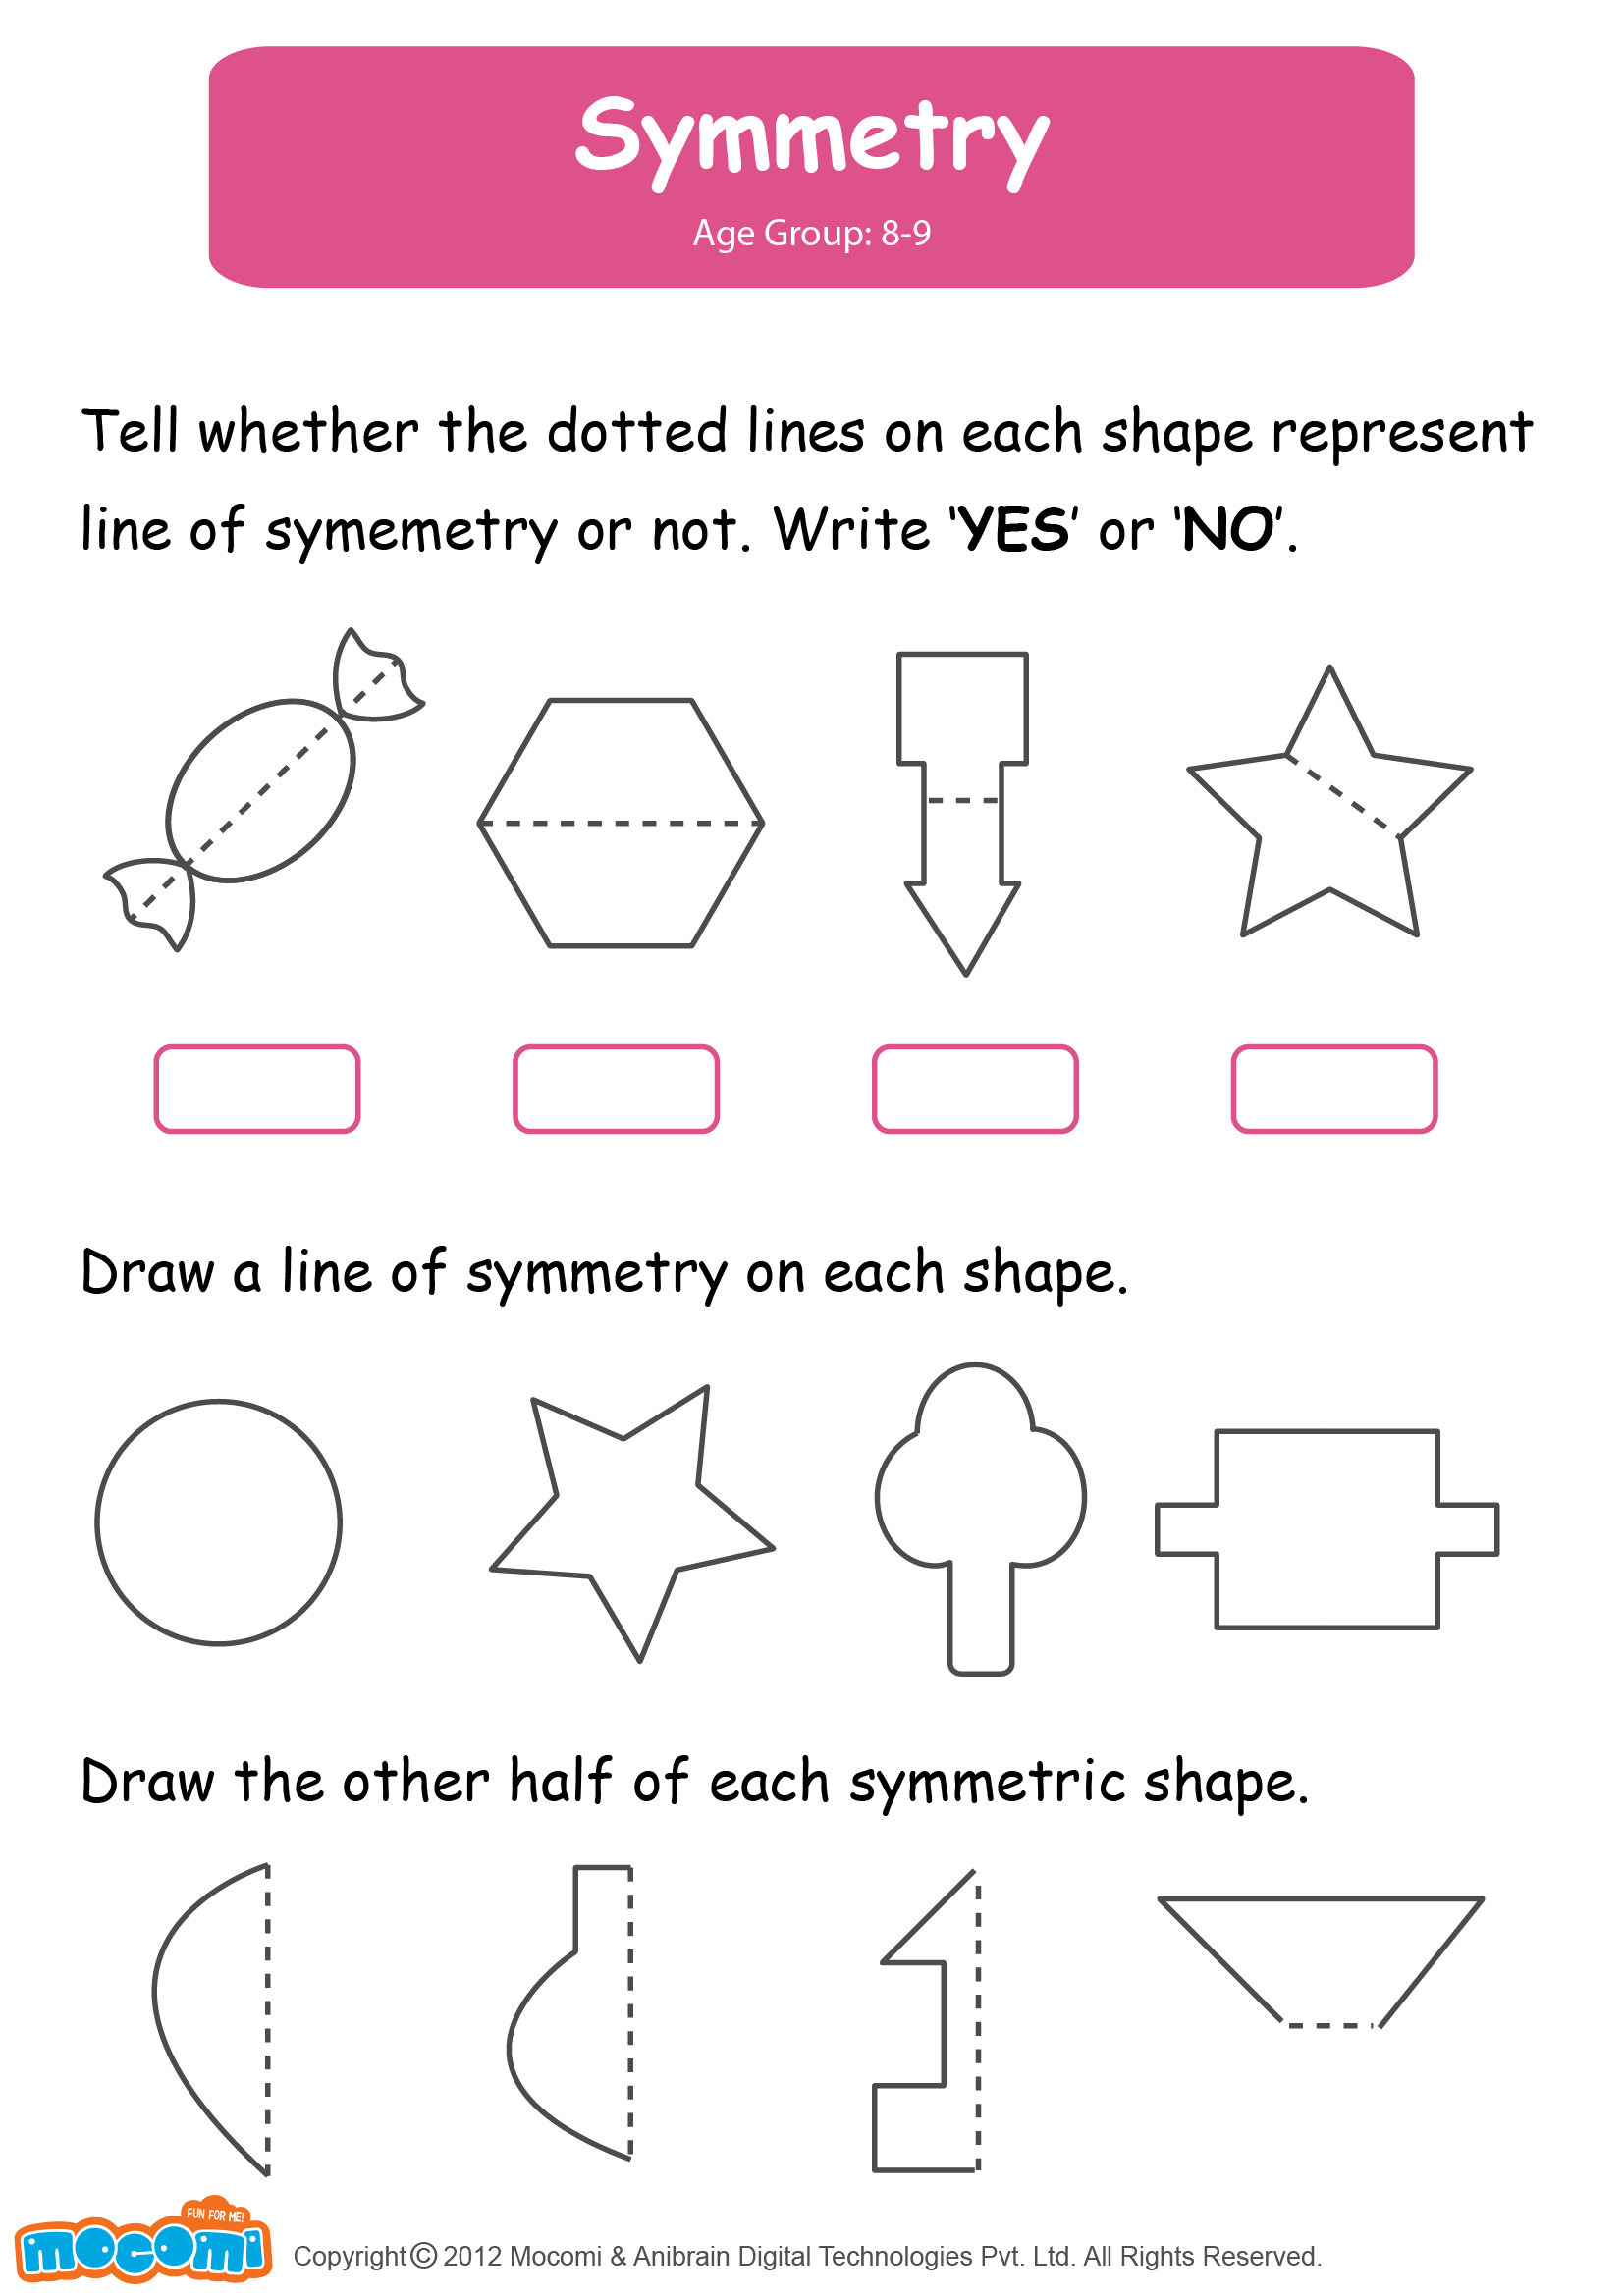 Worksheets Symmetry Worksheets symmetry worksheet for kids learn math worksheets and mocomi